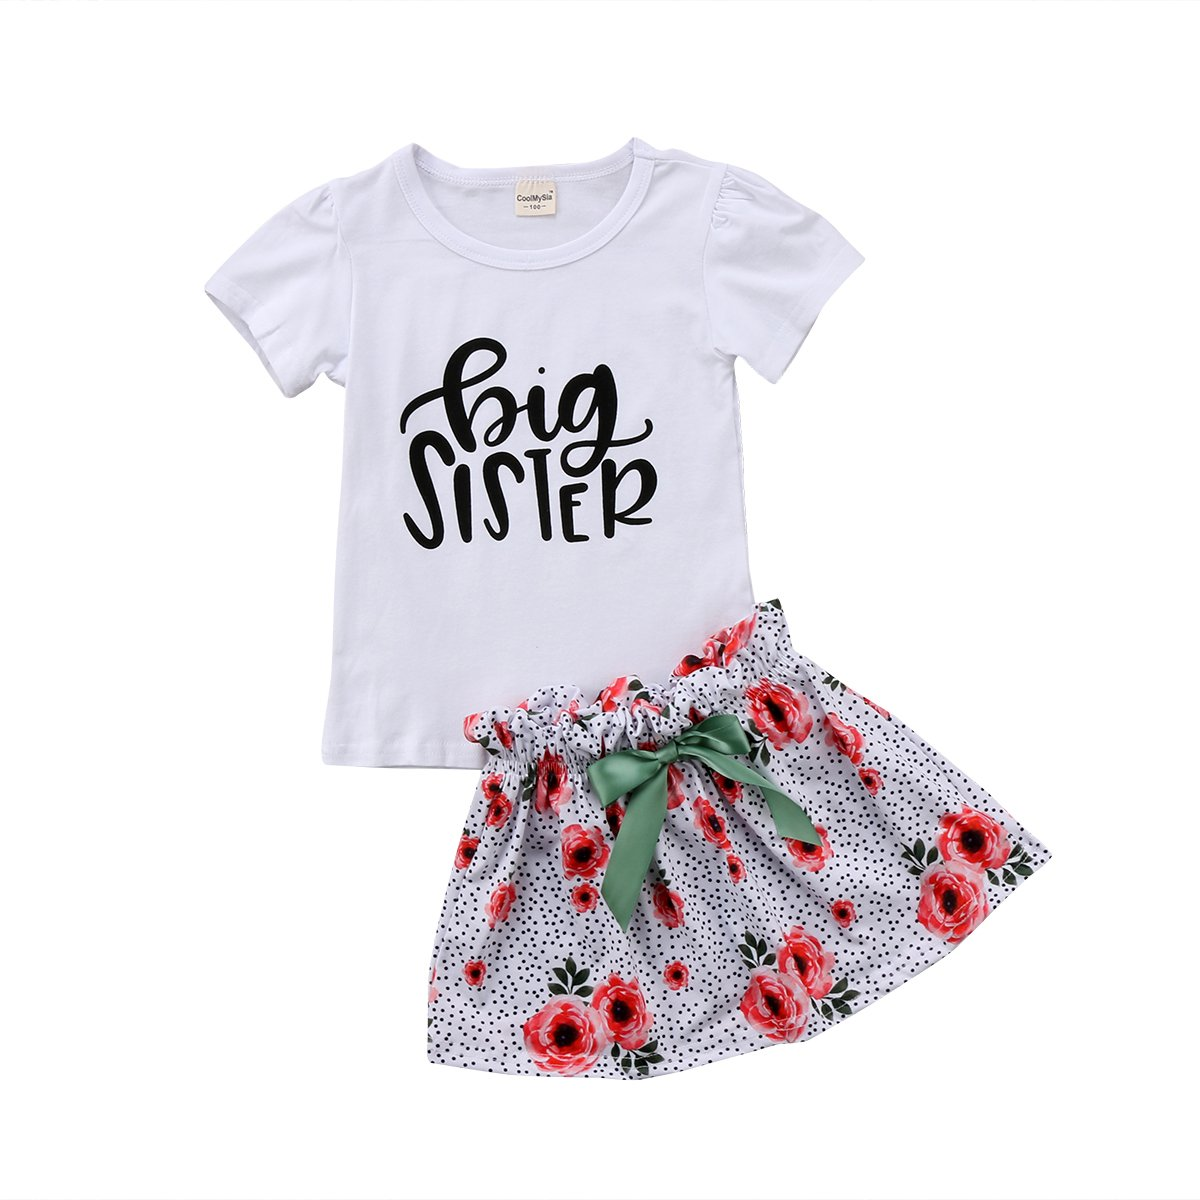 Kidsa 0-24M Little Sister & 2-7T Big Sister Matching Outfits Set Cute Clothes Set